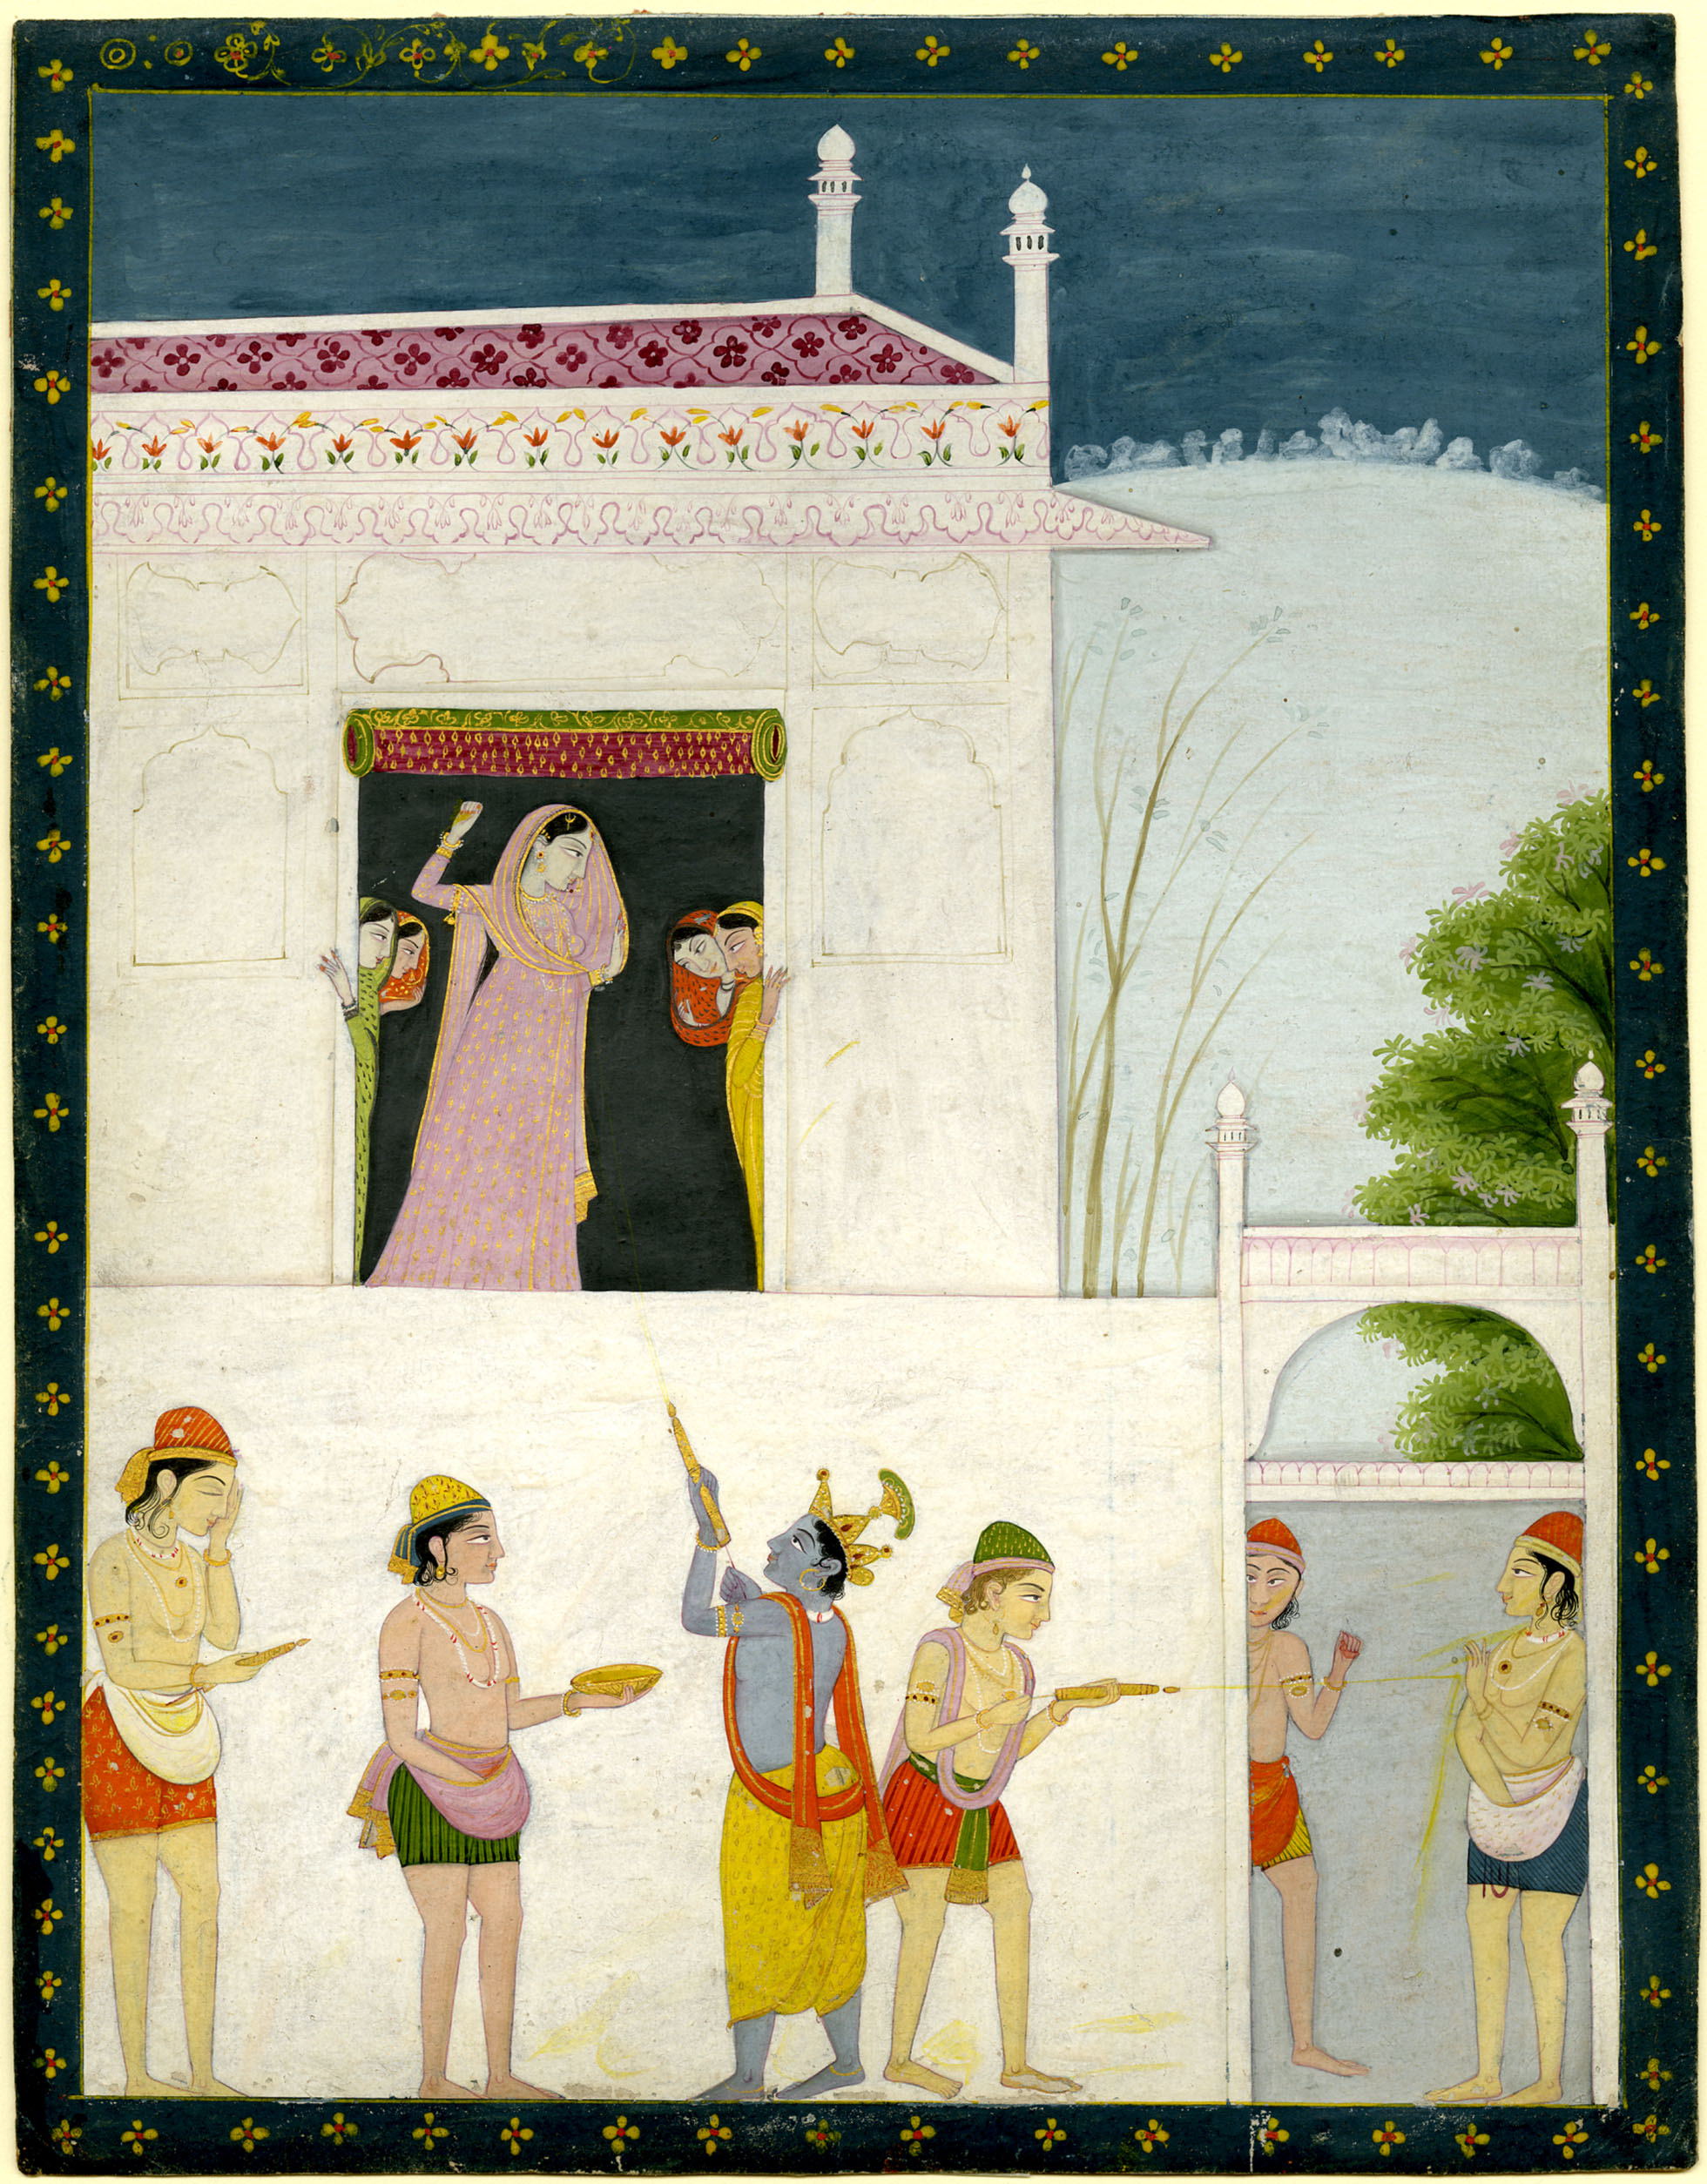 Krishna squirting coloured water at Radha.  Painting, Pahari School, early 19th century.